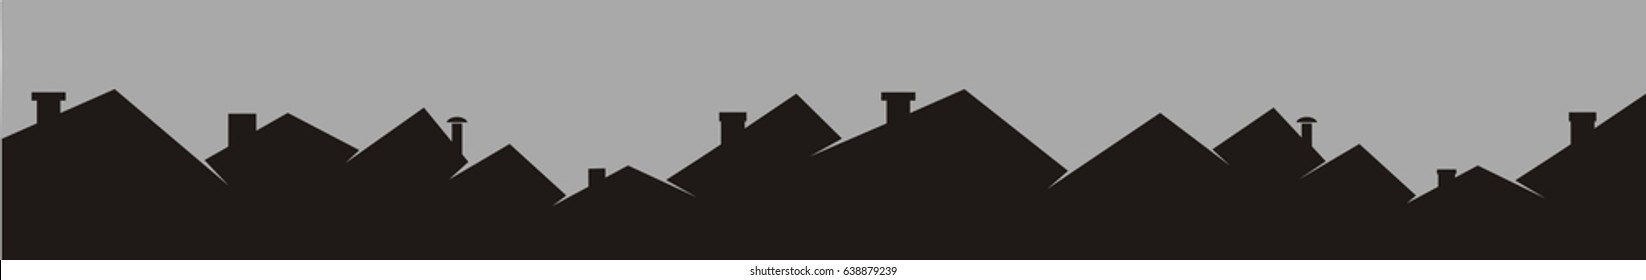 Cityscape, roofs. Vector background, black silhouette.